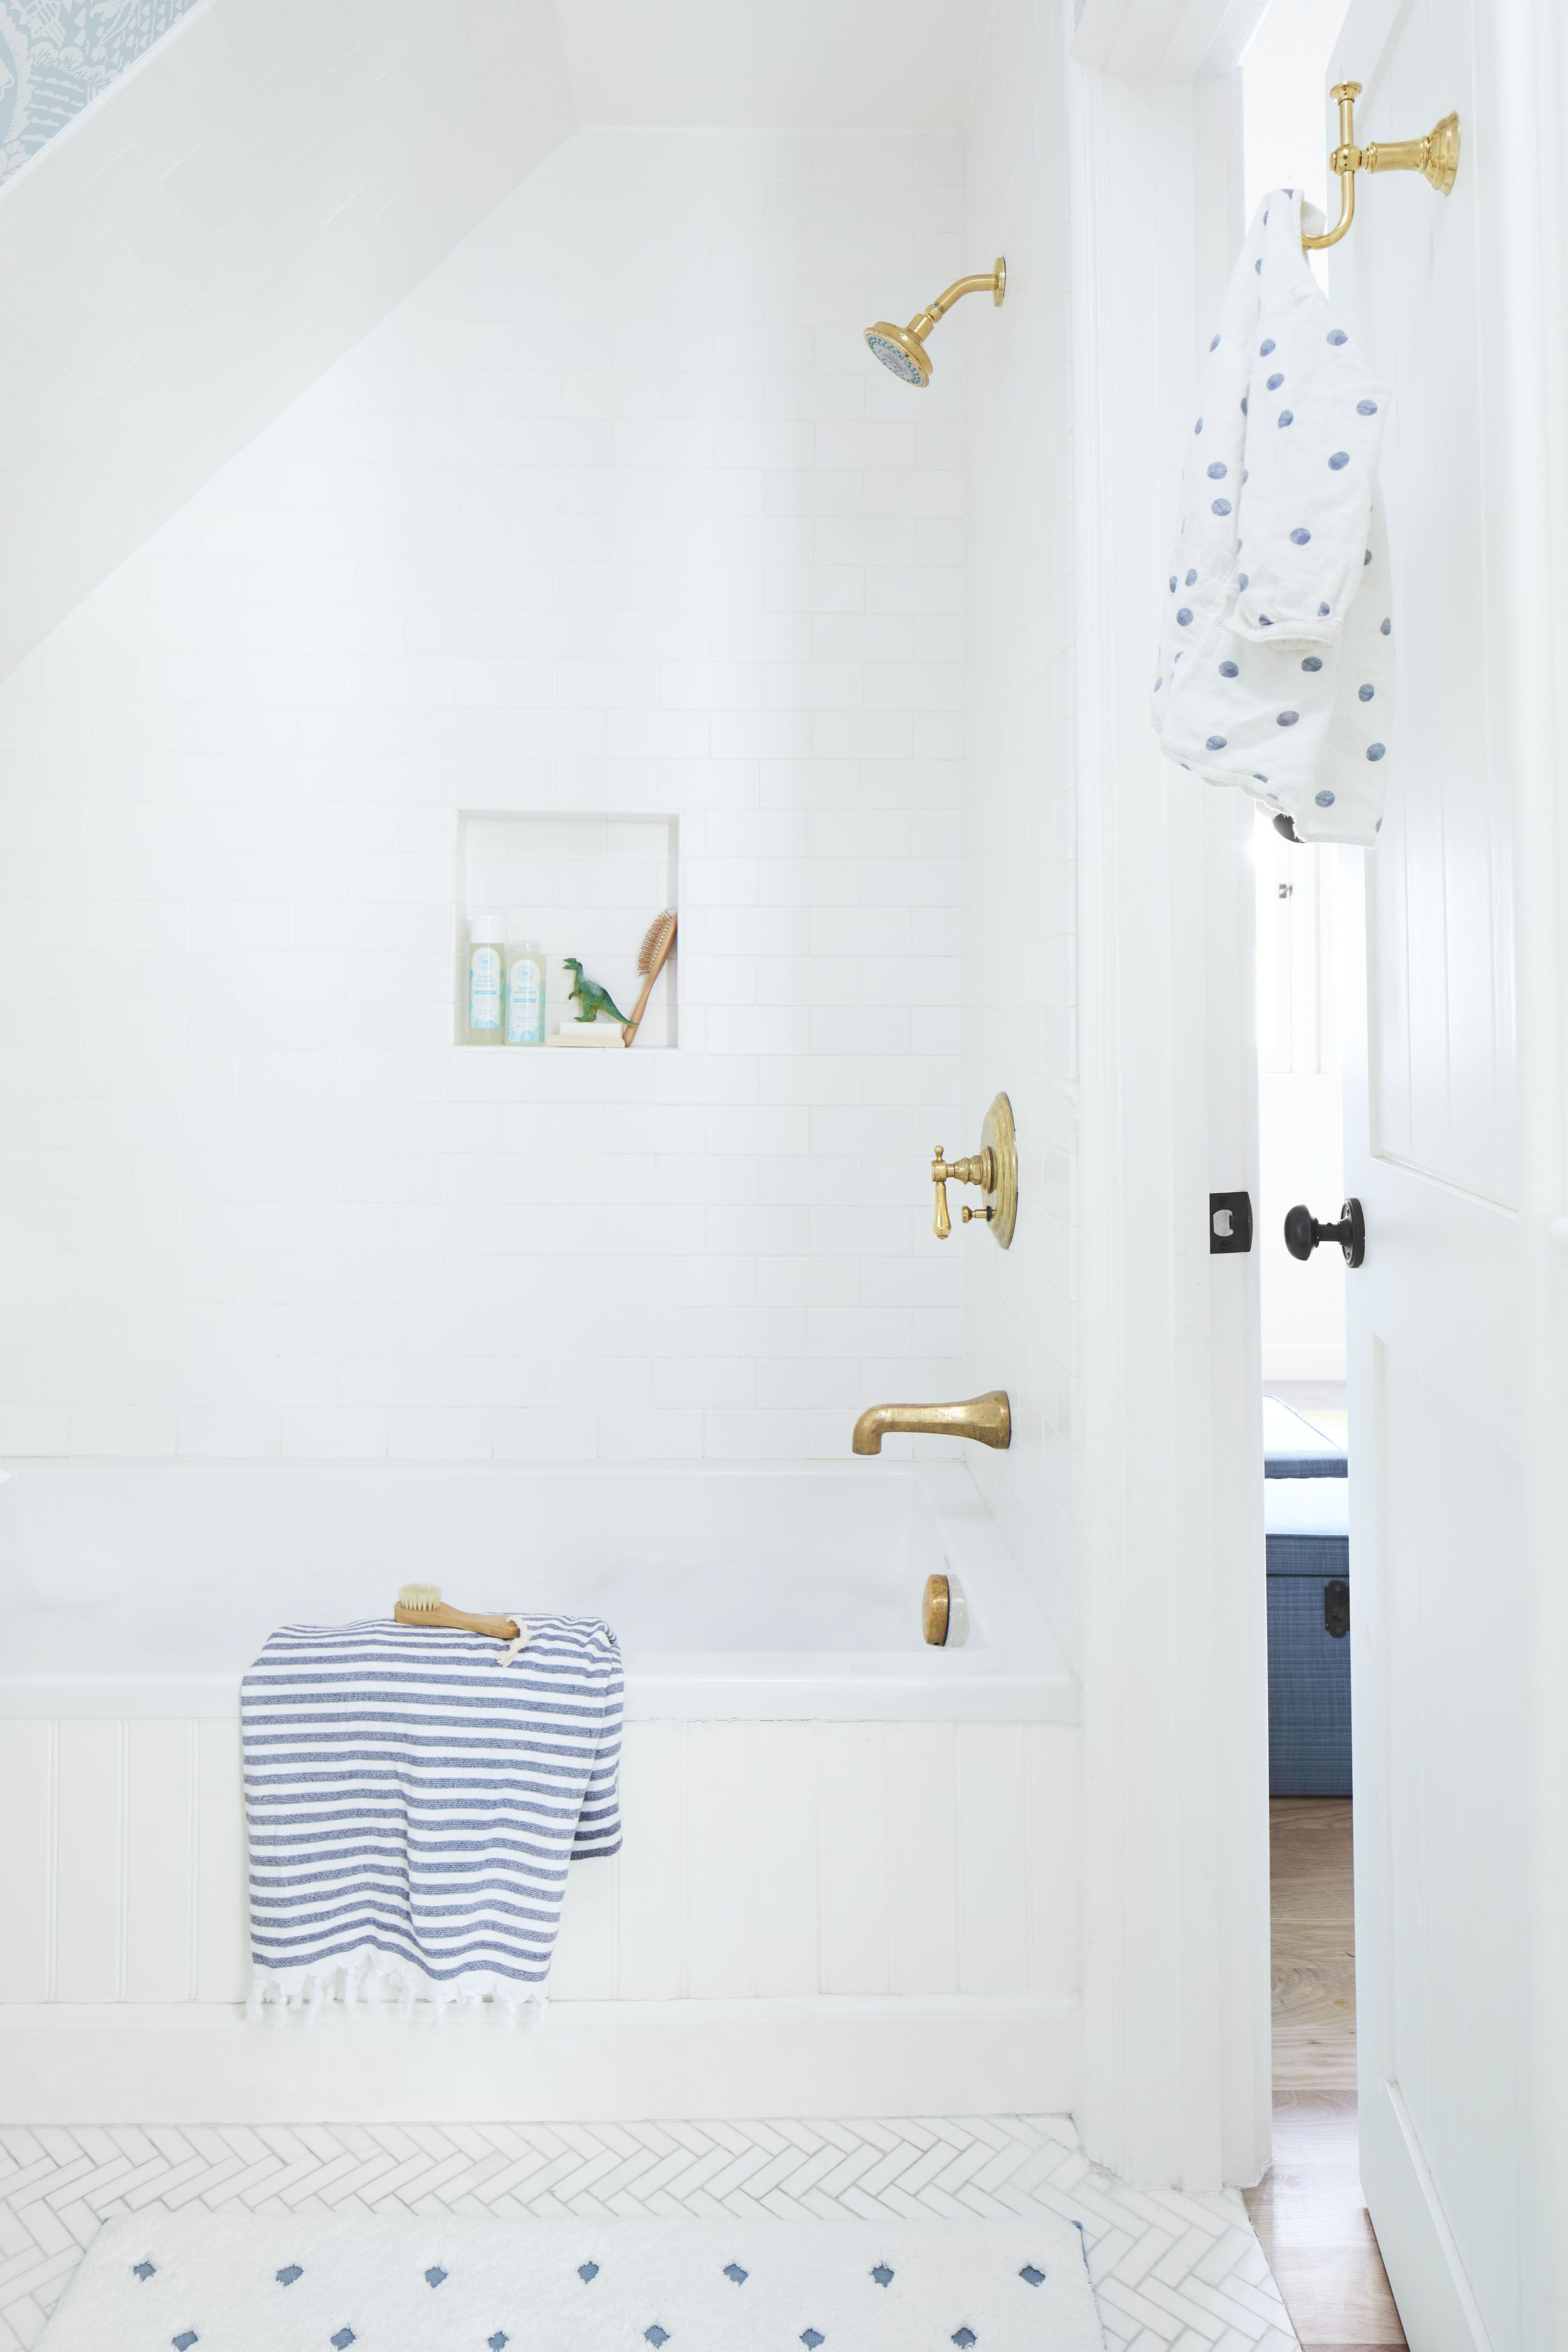 Our Kid's Jack and Jill Bathroom Reveal + Shop The Look - Emily Henderson